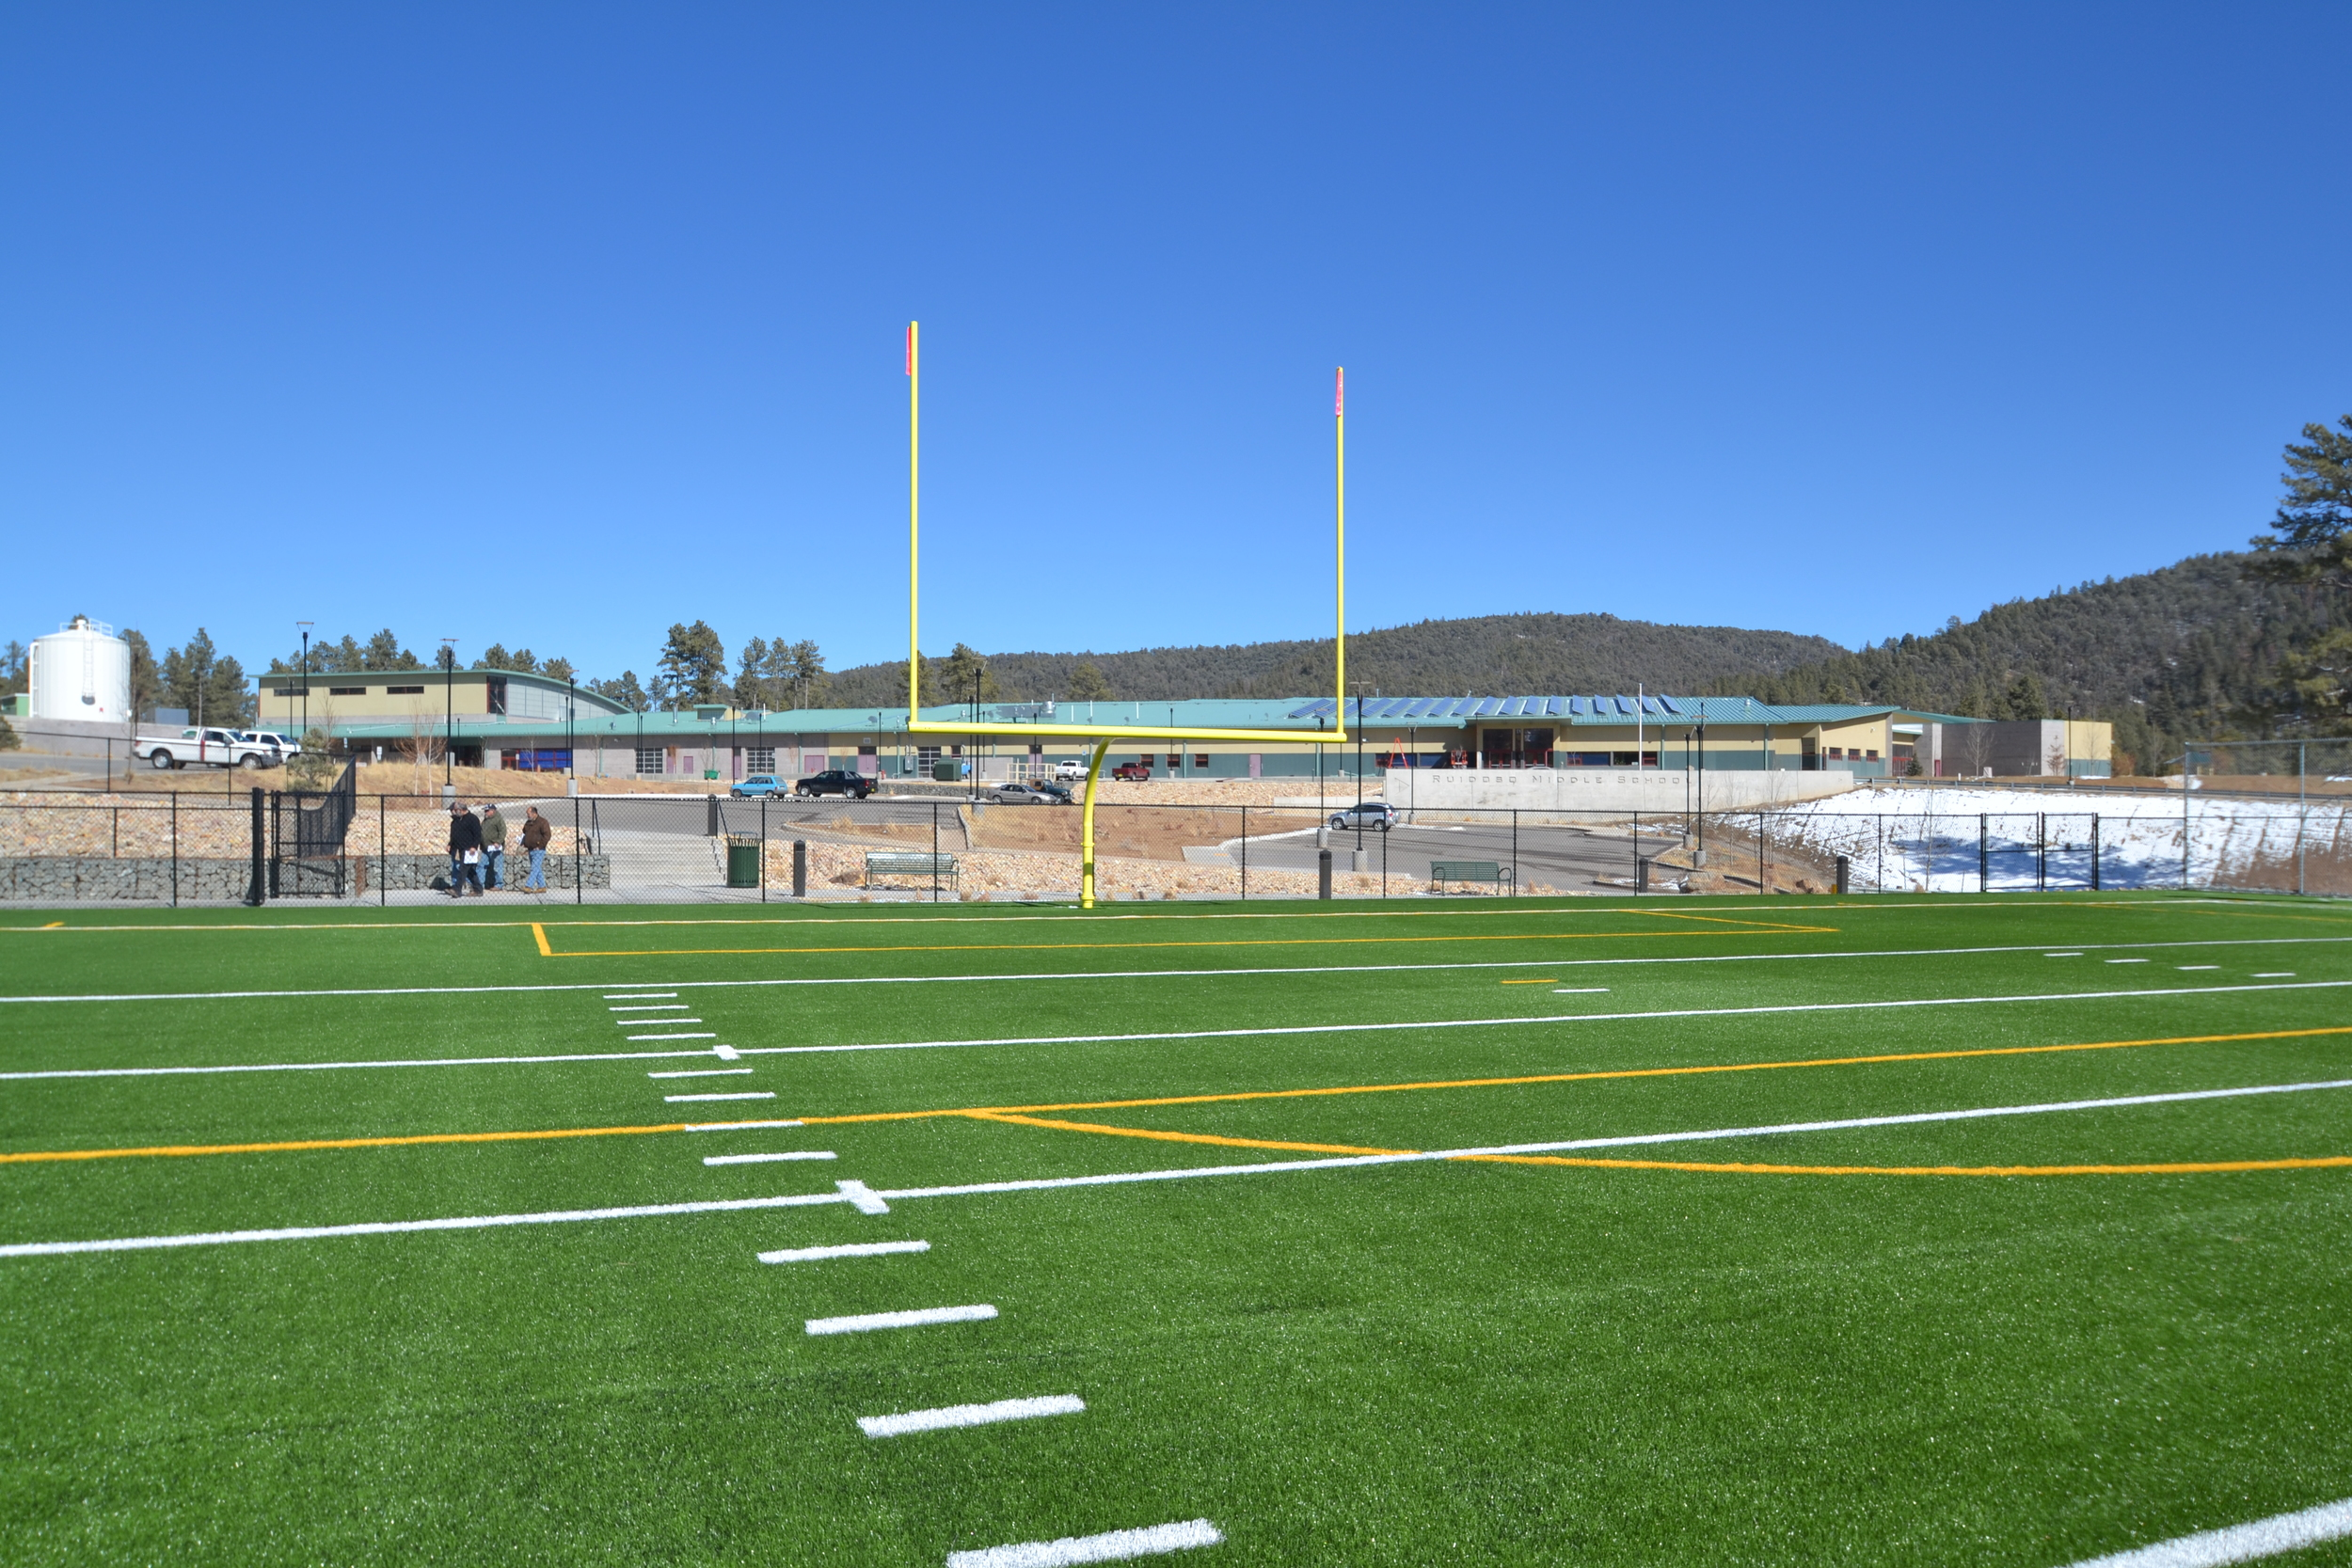 Artificial turf athletic field